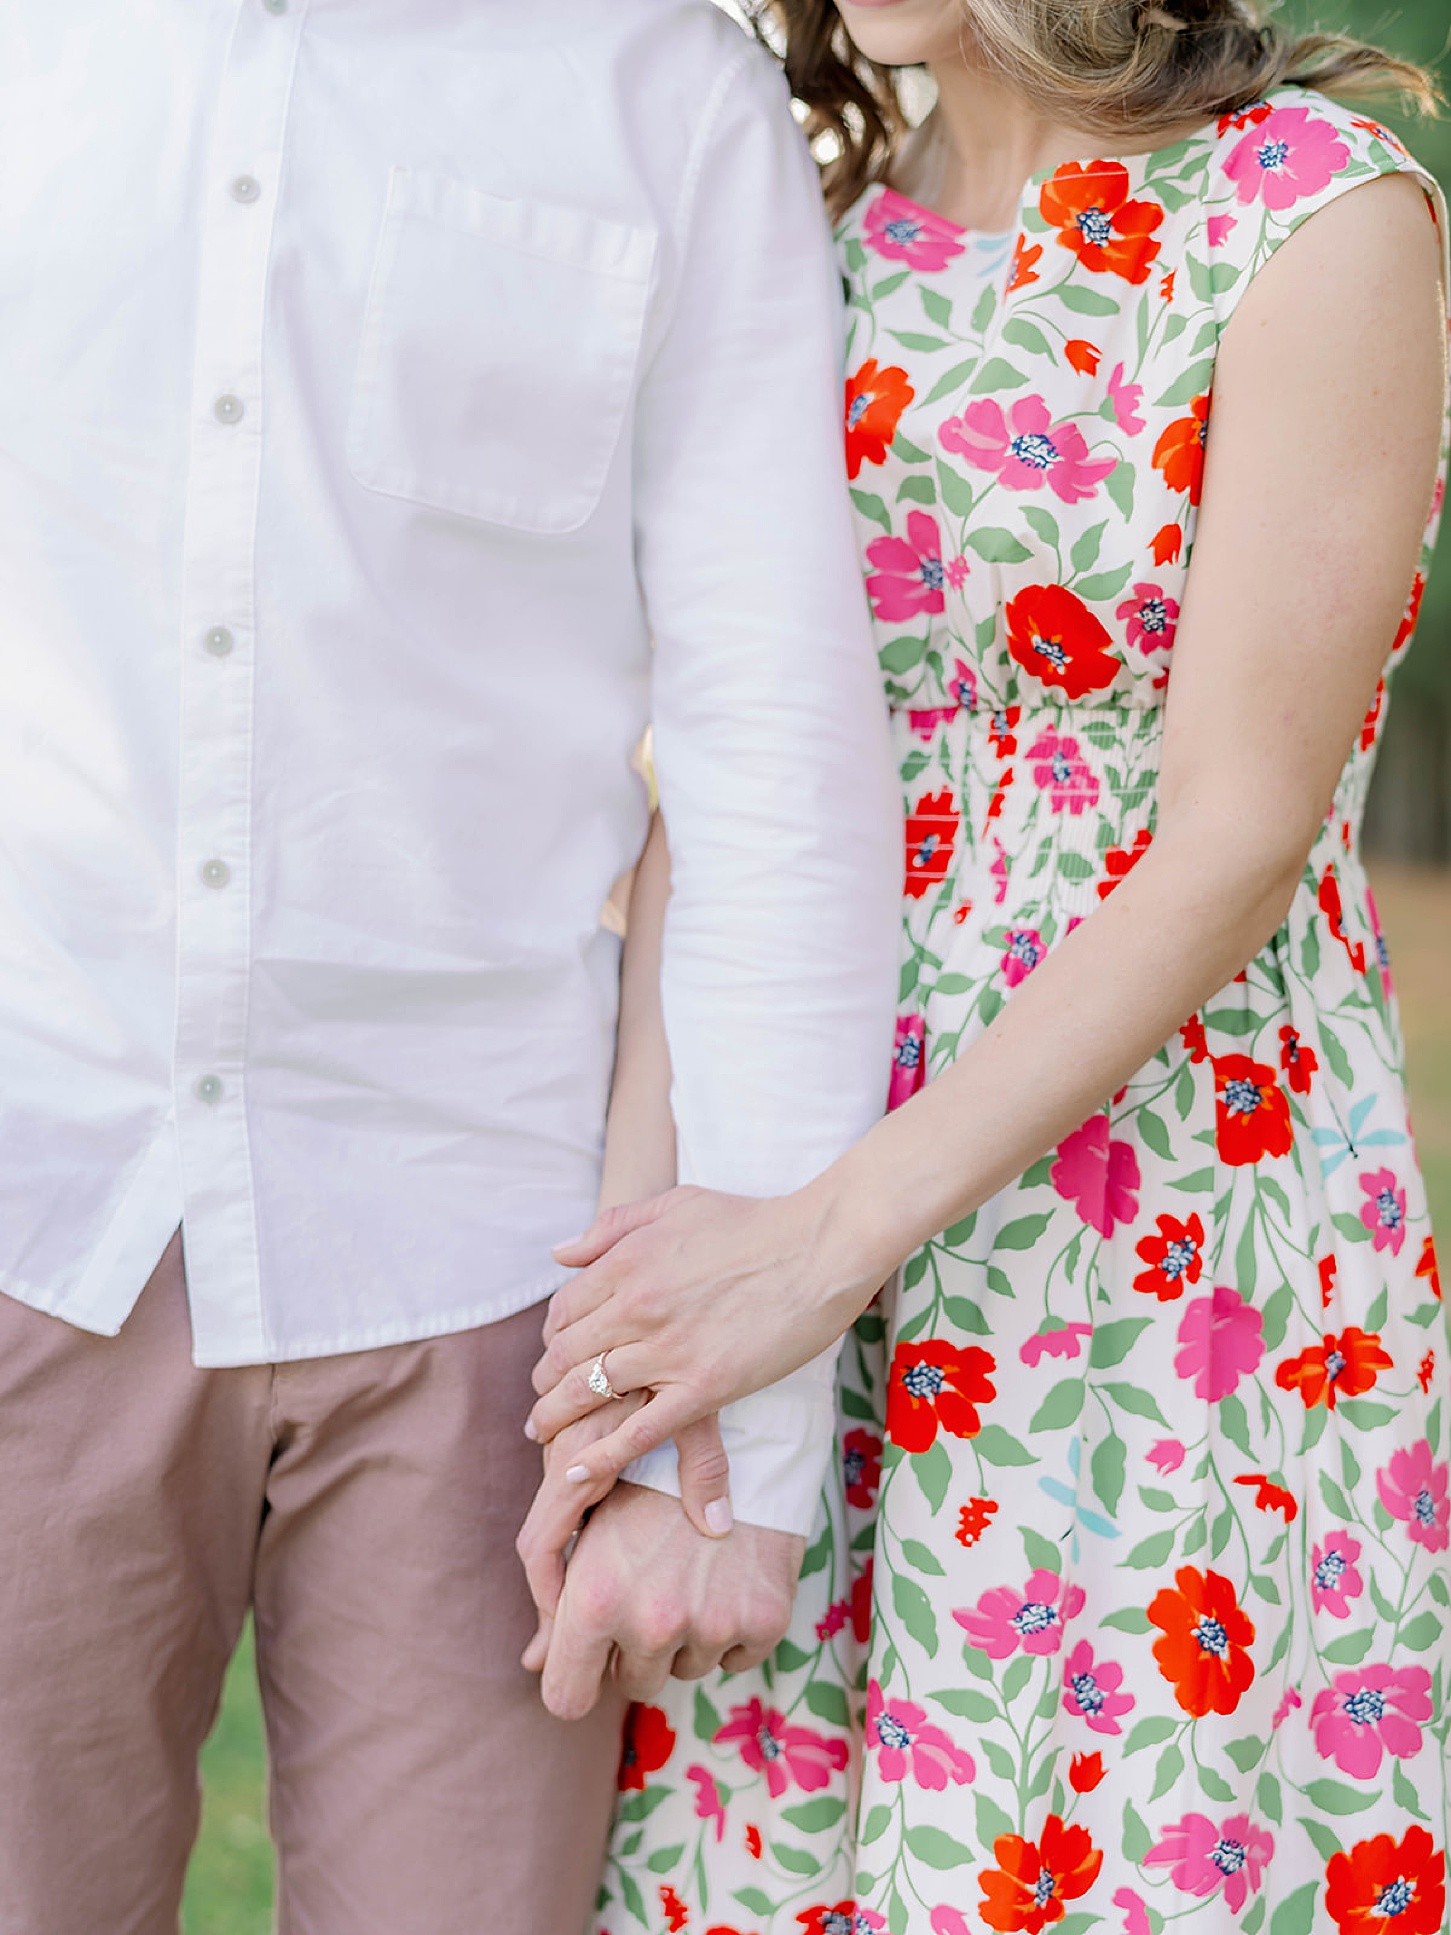 Bast Brothers Garden Center Mullica Hill NJ Engagement Photography by Magdalena Studios 0008